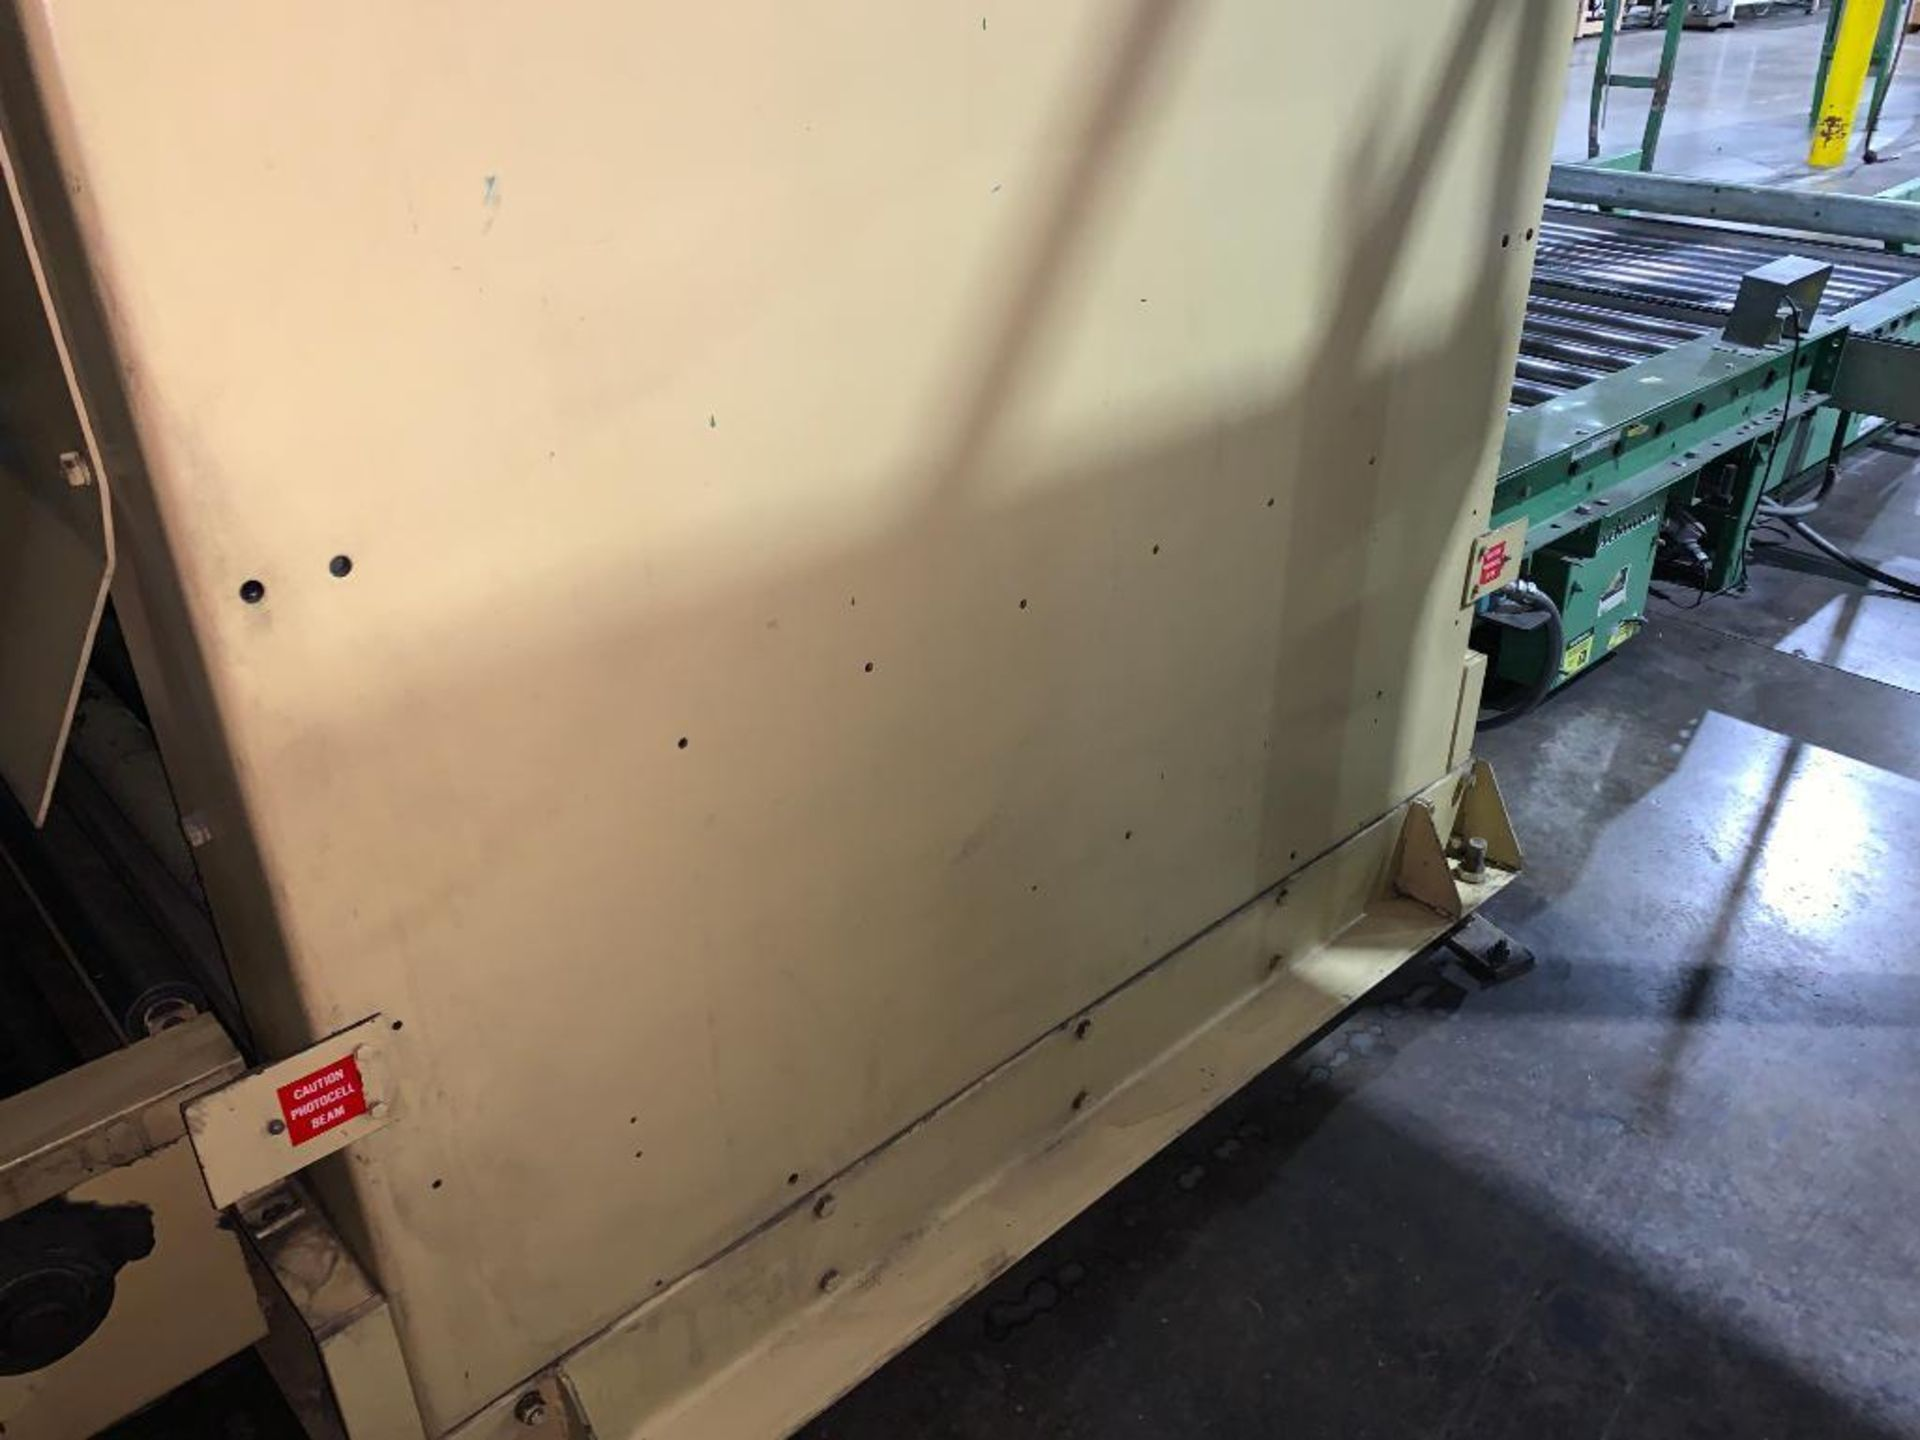 1992 Currie top to bottom palletizer, machine number LSP-5-1176 - Image 39 of 56